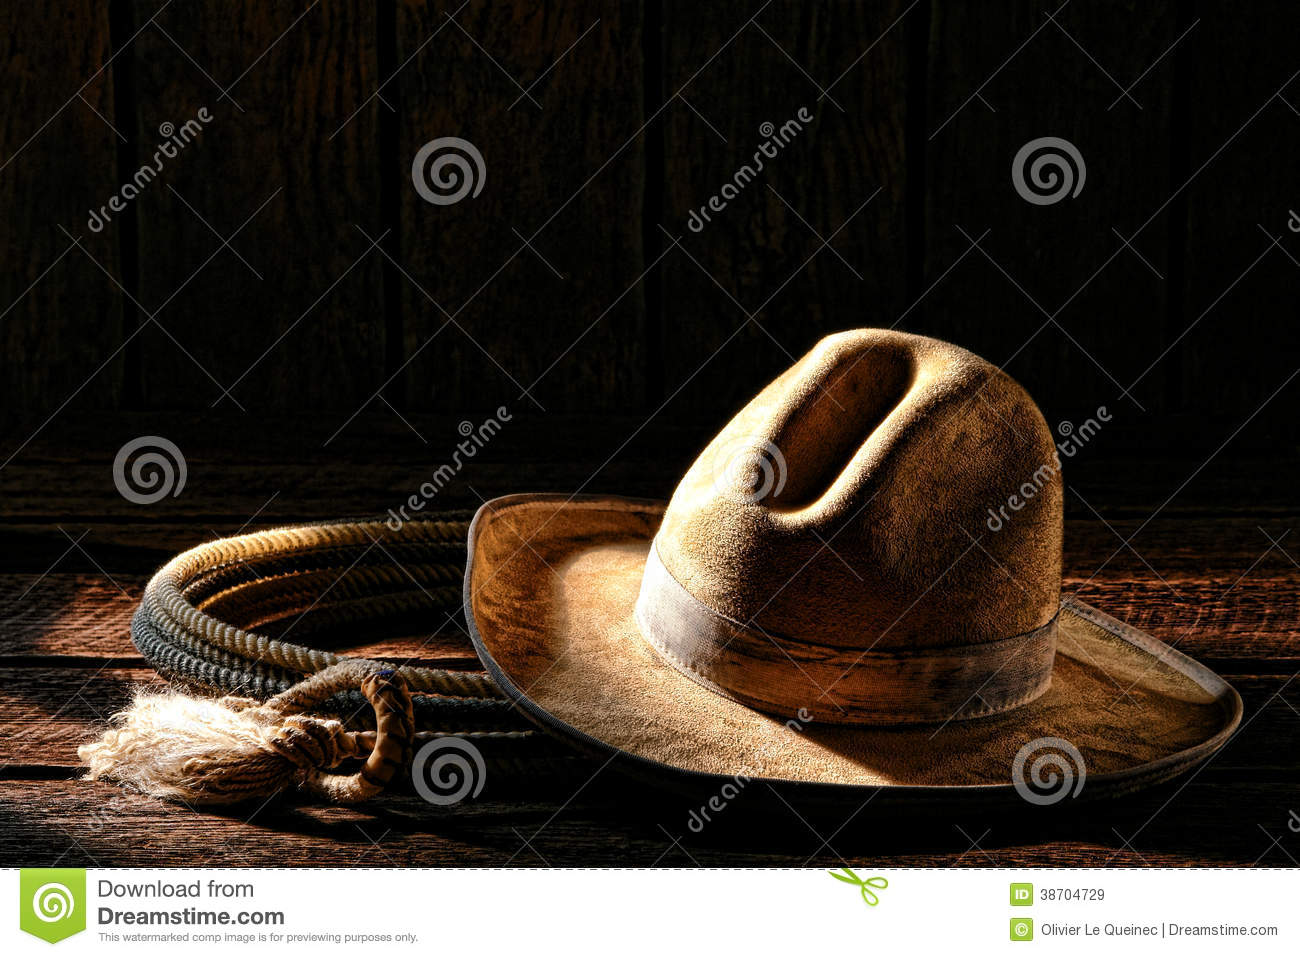 735c3dd83a0 American West rodeo cowboy worn and dirty white felt hat with authentic  roping lariat lasso old weathered wood planks in an old western ranch  wooden barn in ...